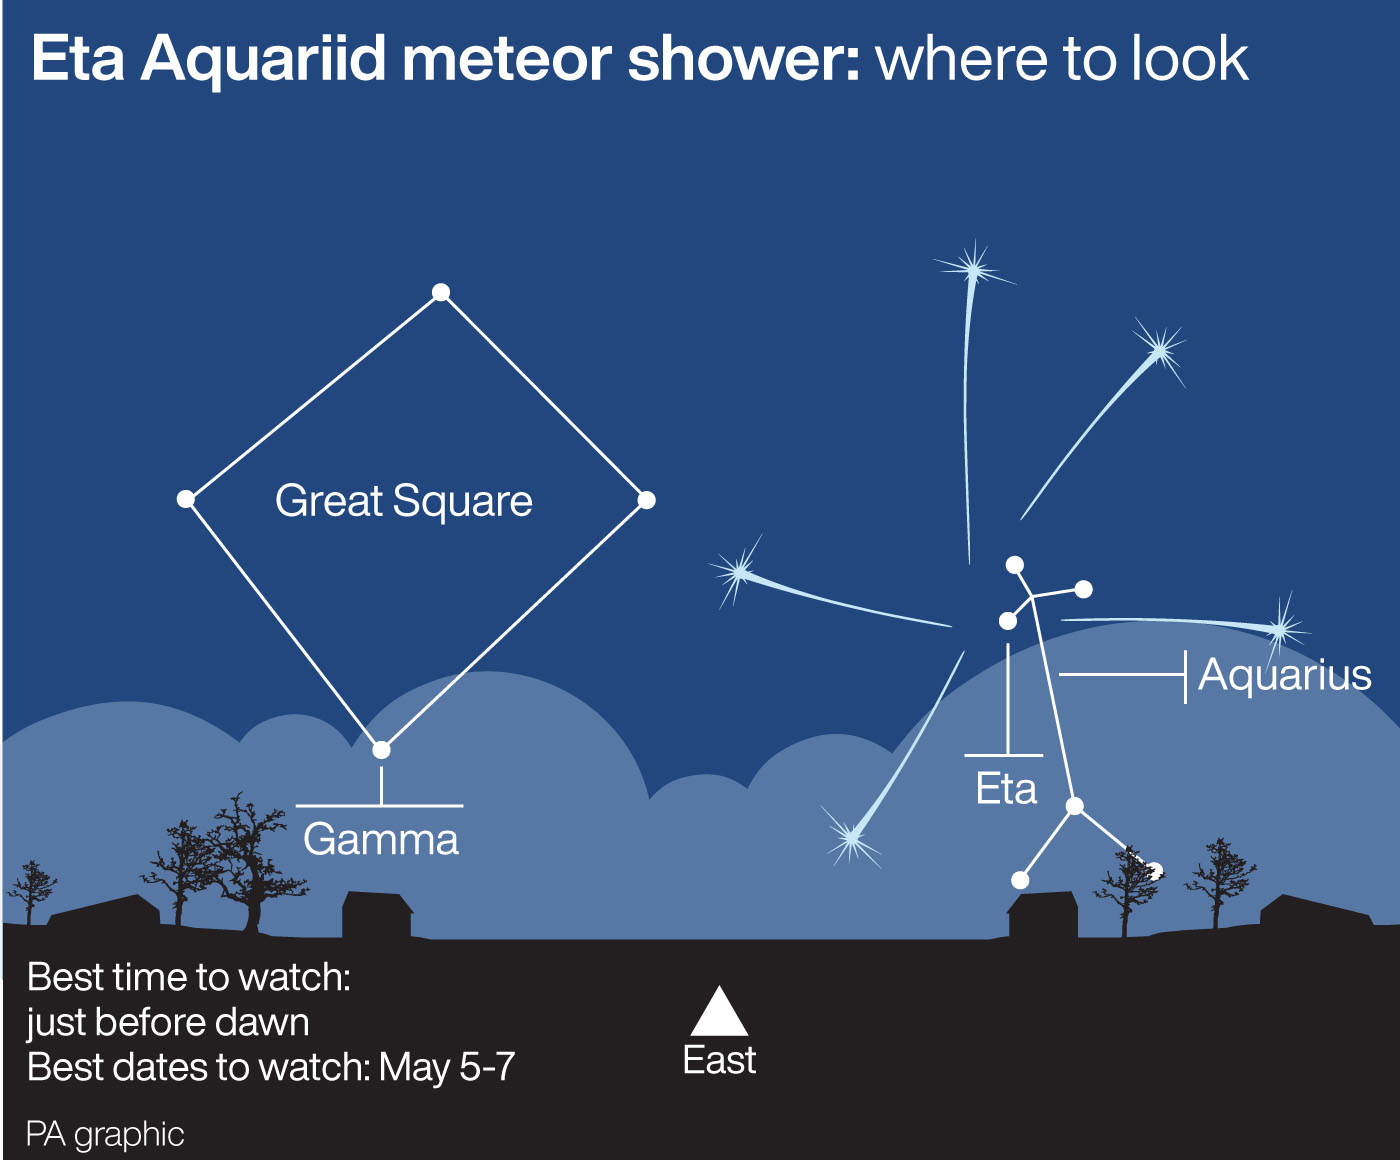 Eta Aquariid meteor shower